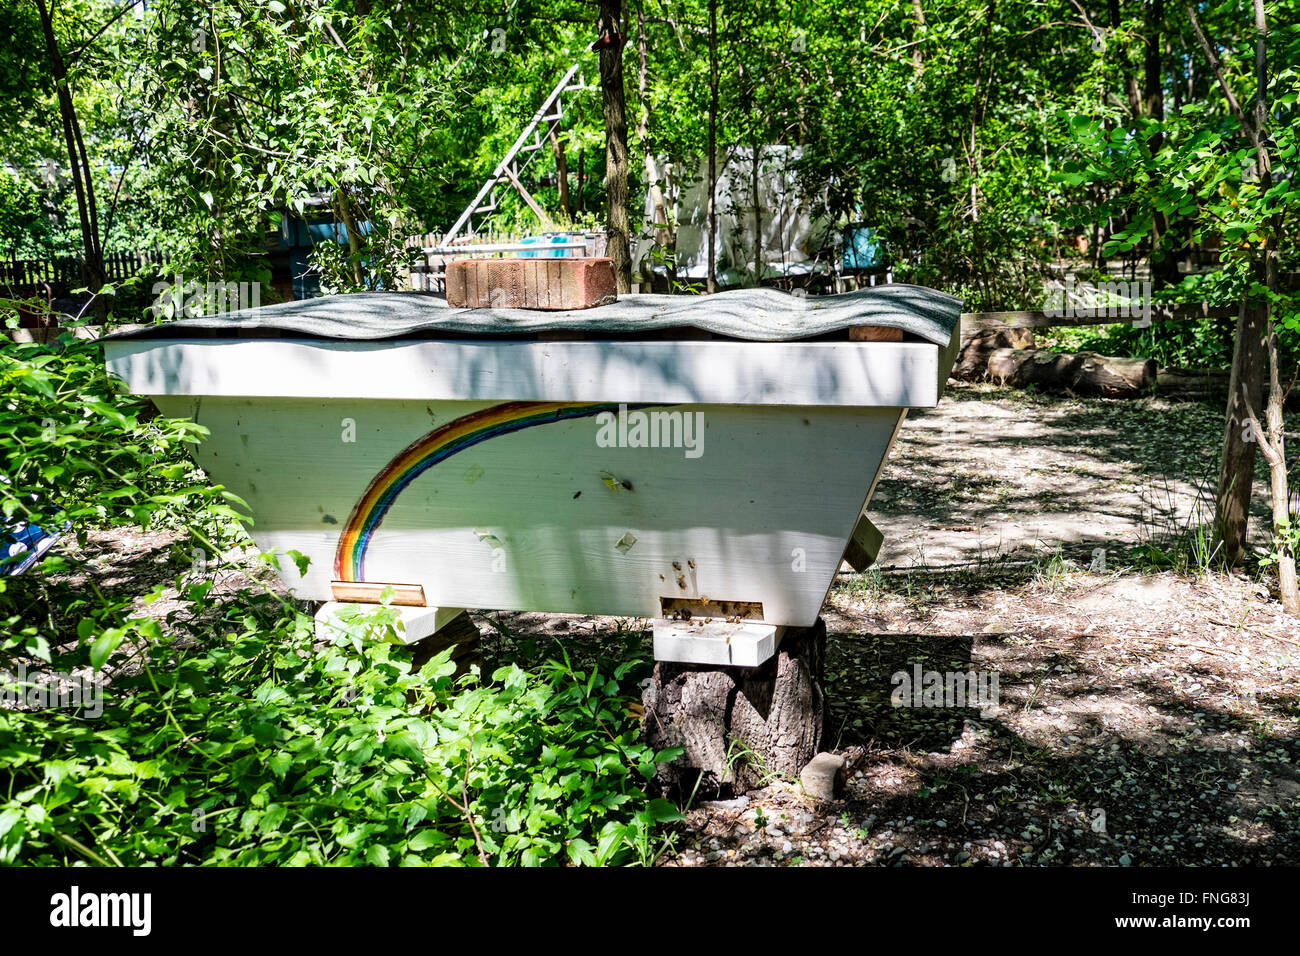 Prinzessinnengarten, Bee hives in Princesses garden, an urban agricultural project. - Stock Image